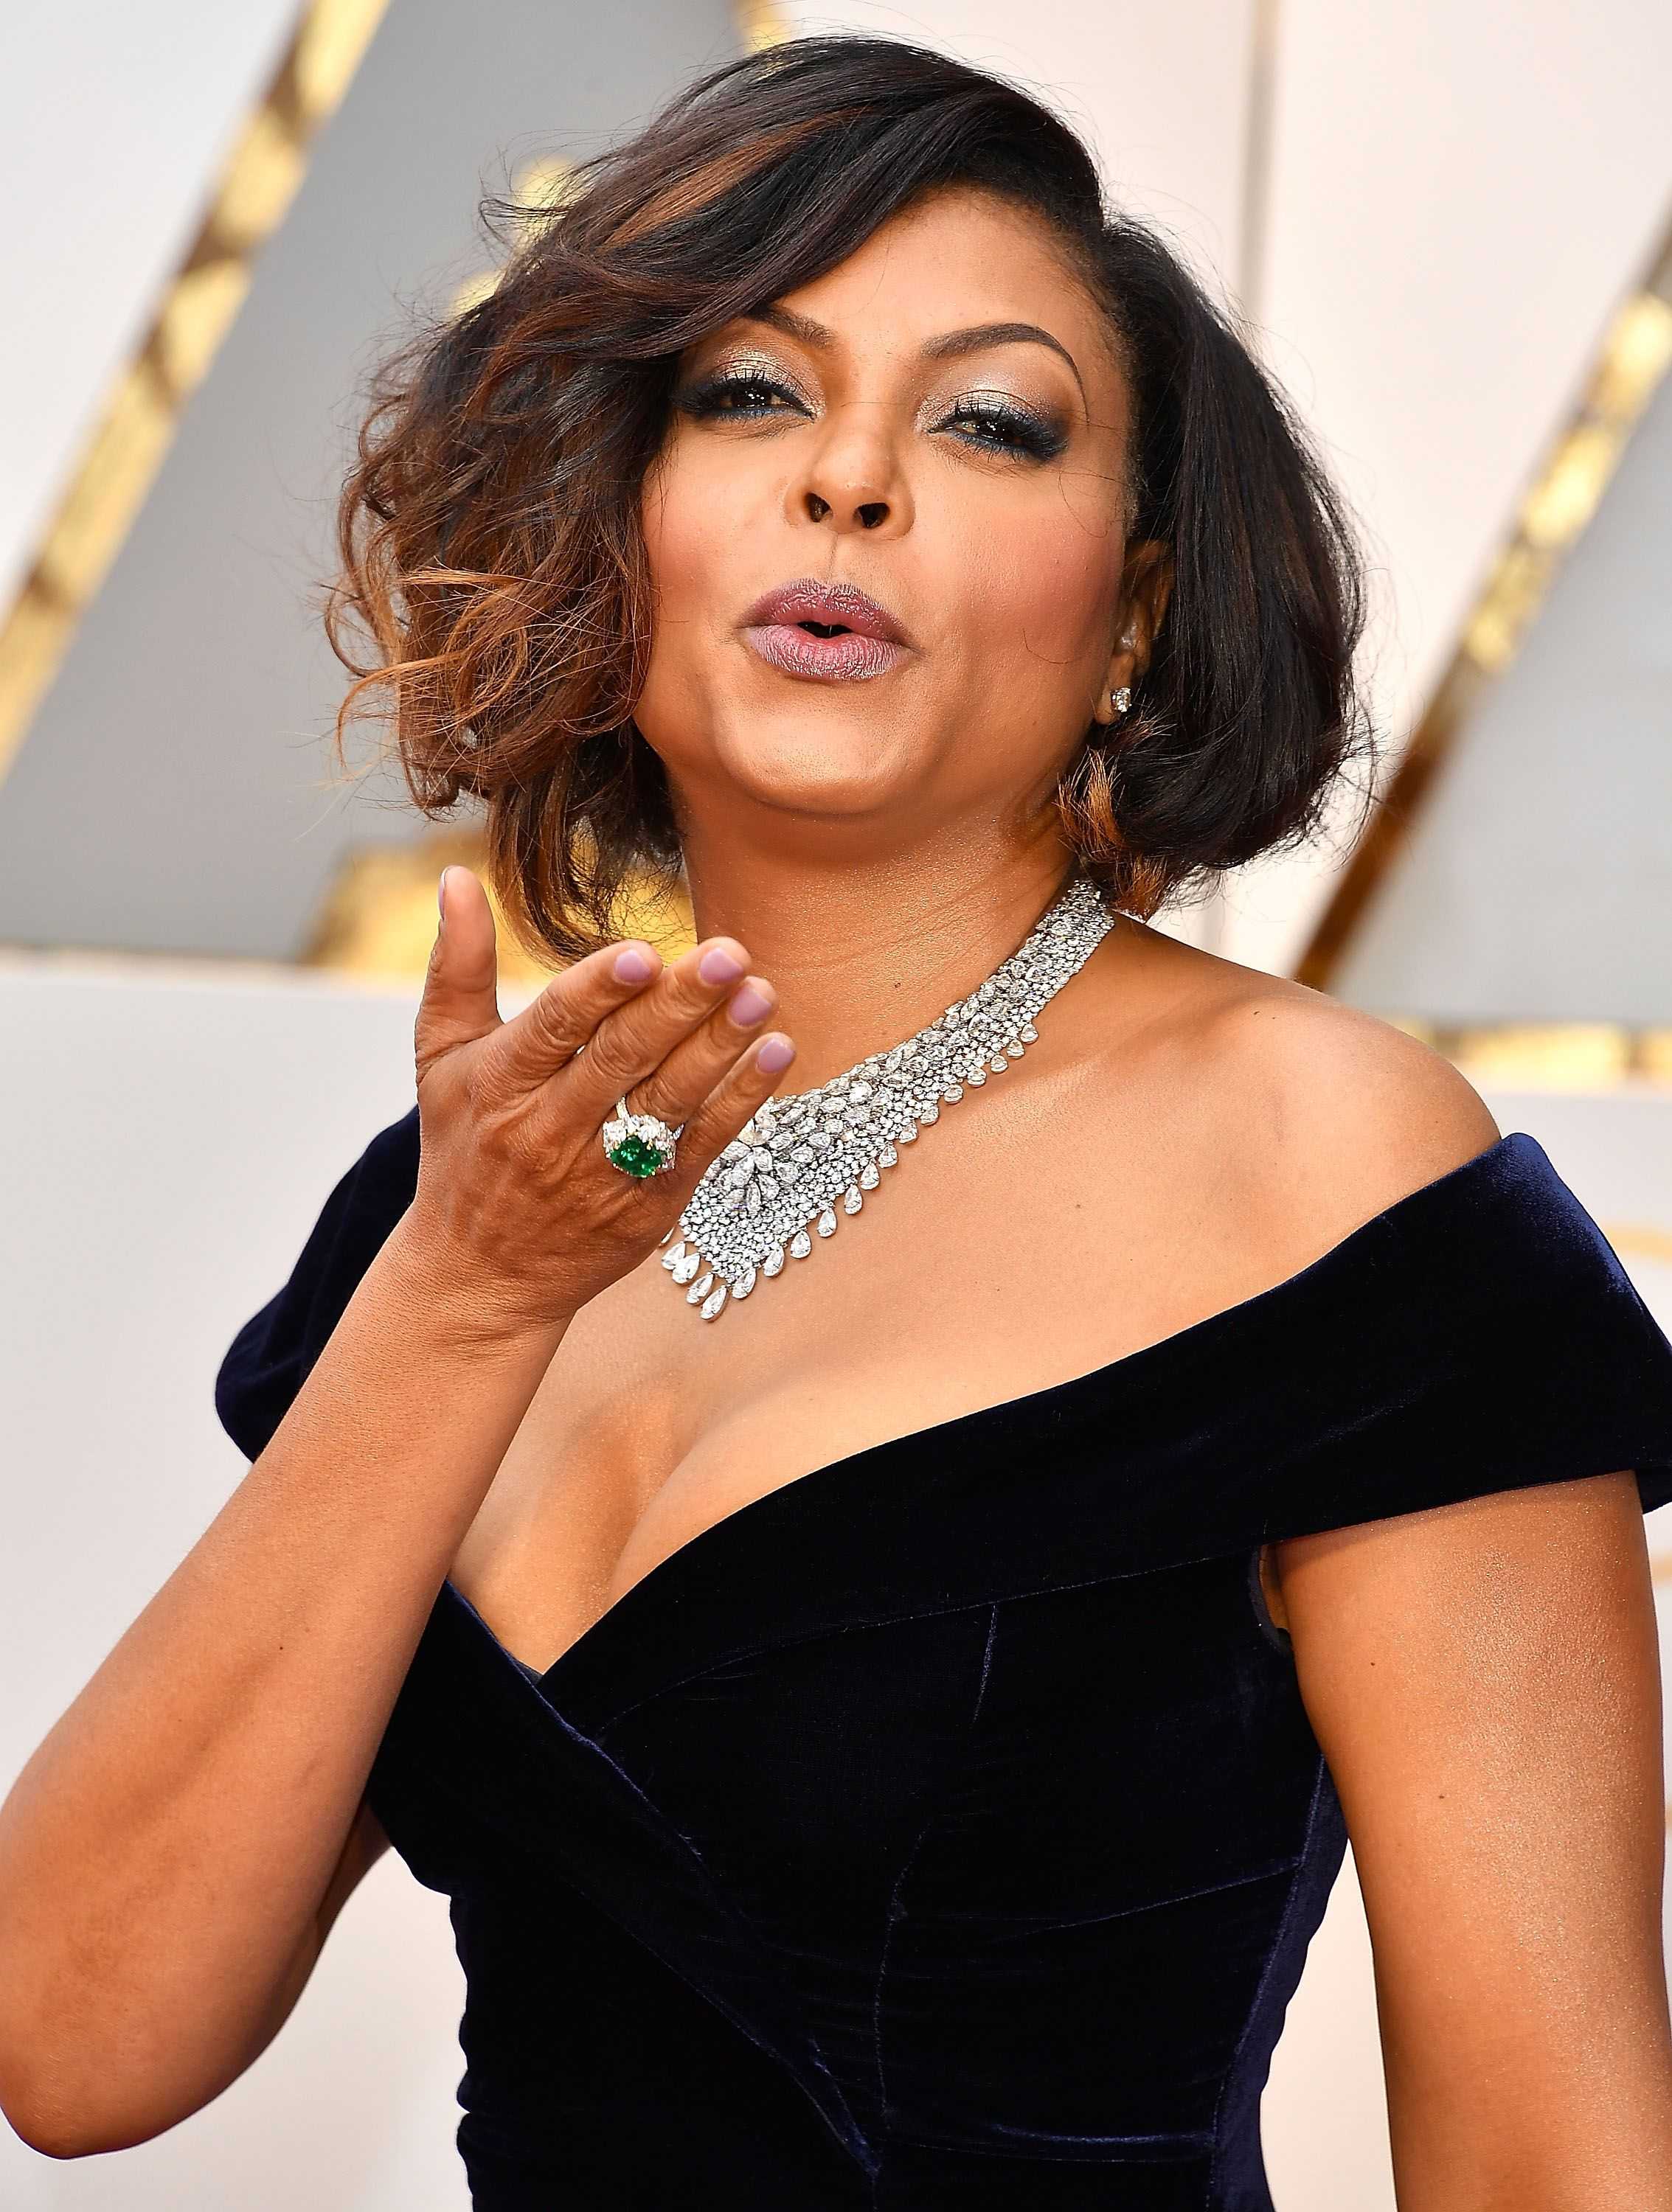 Taraji P. Henson at the 89th Annual Academy Awards at Hollywood & Highland Center on February 26, 2017 in Hollywood, California. | Source: Getty Images